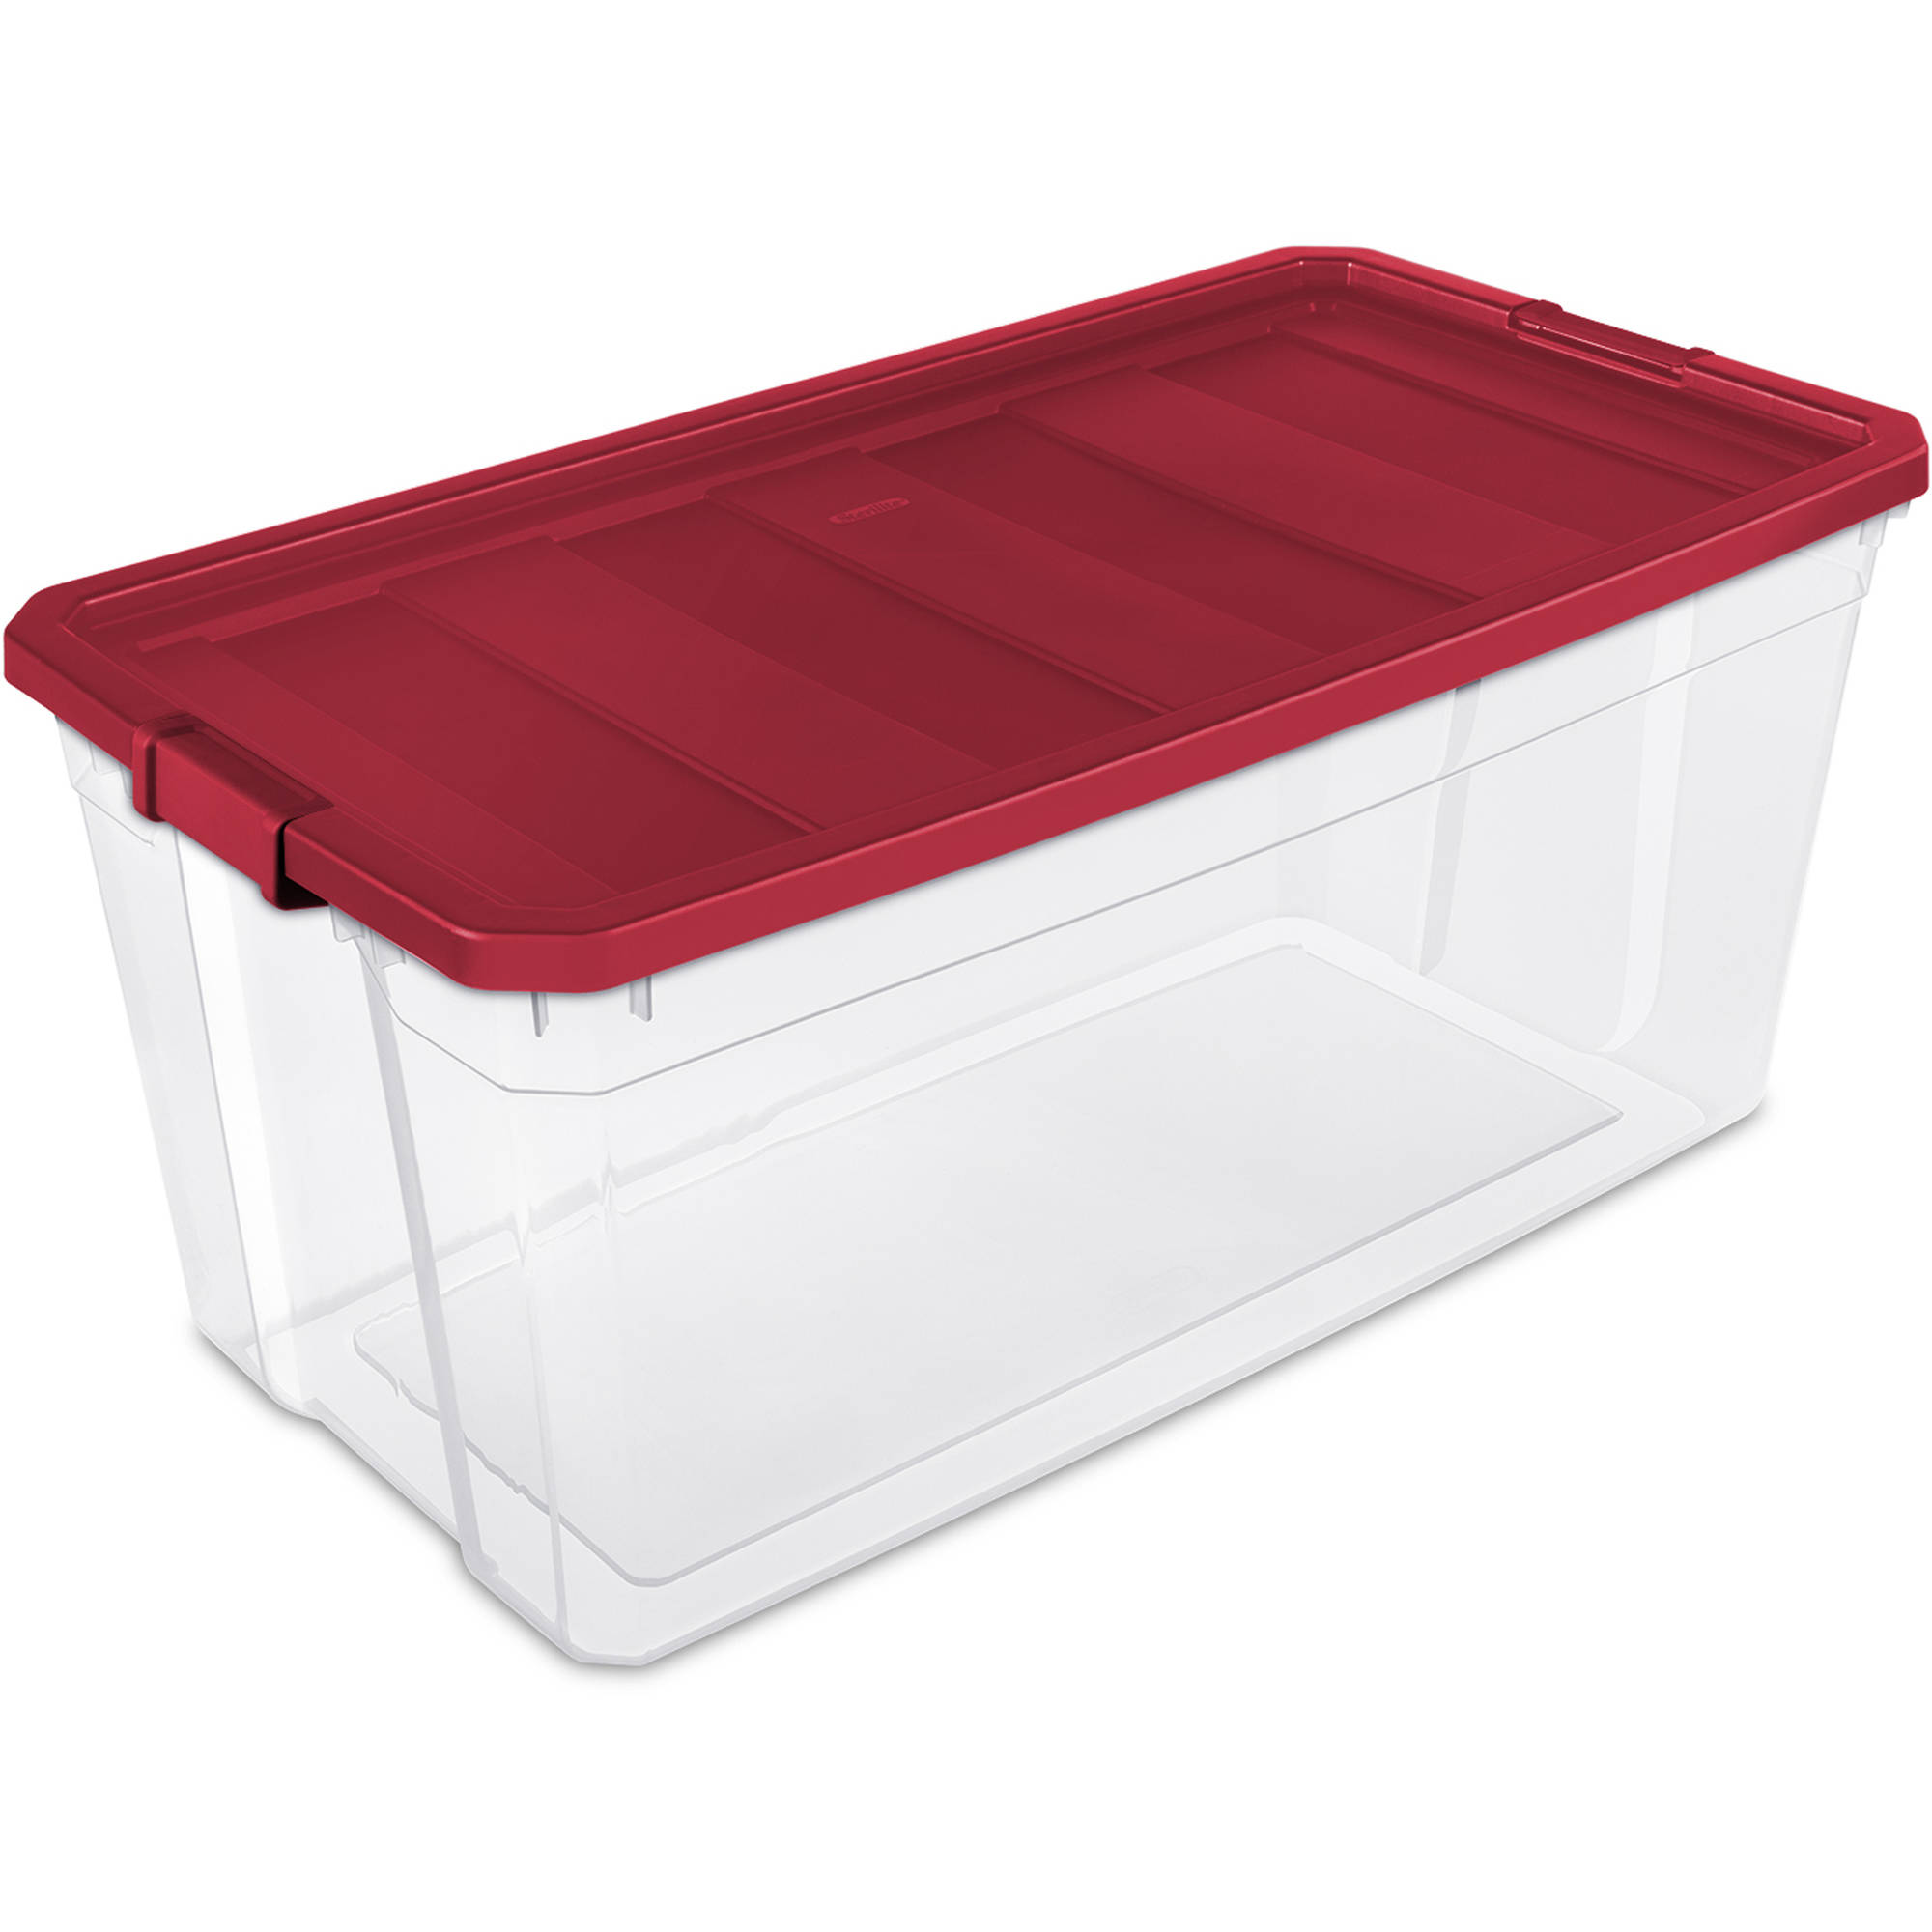 Sterilite 50-Gallon Stacker Box, Really Red